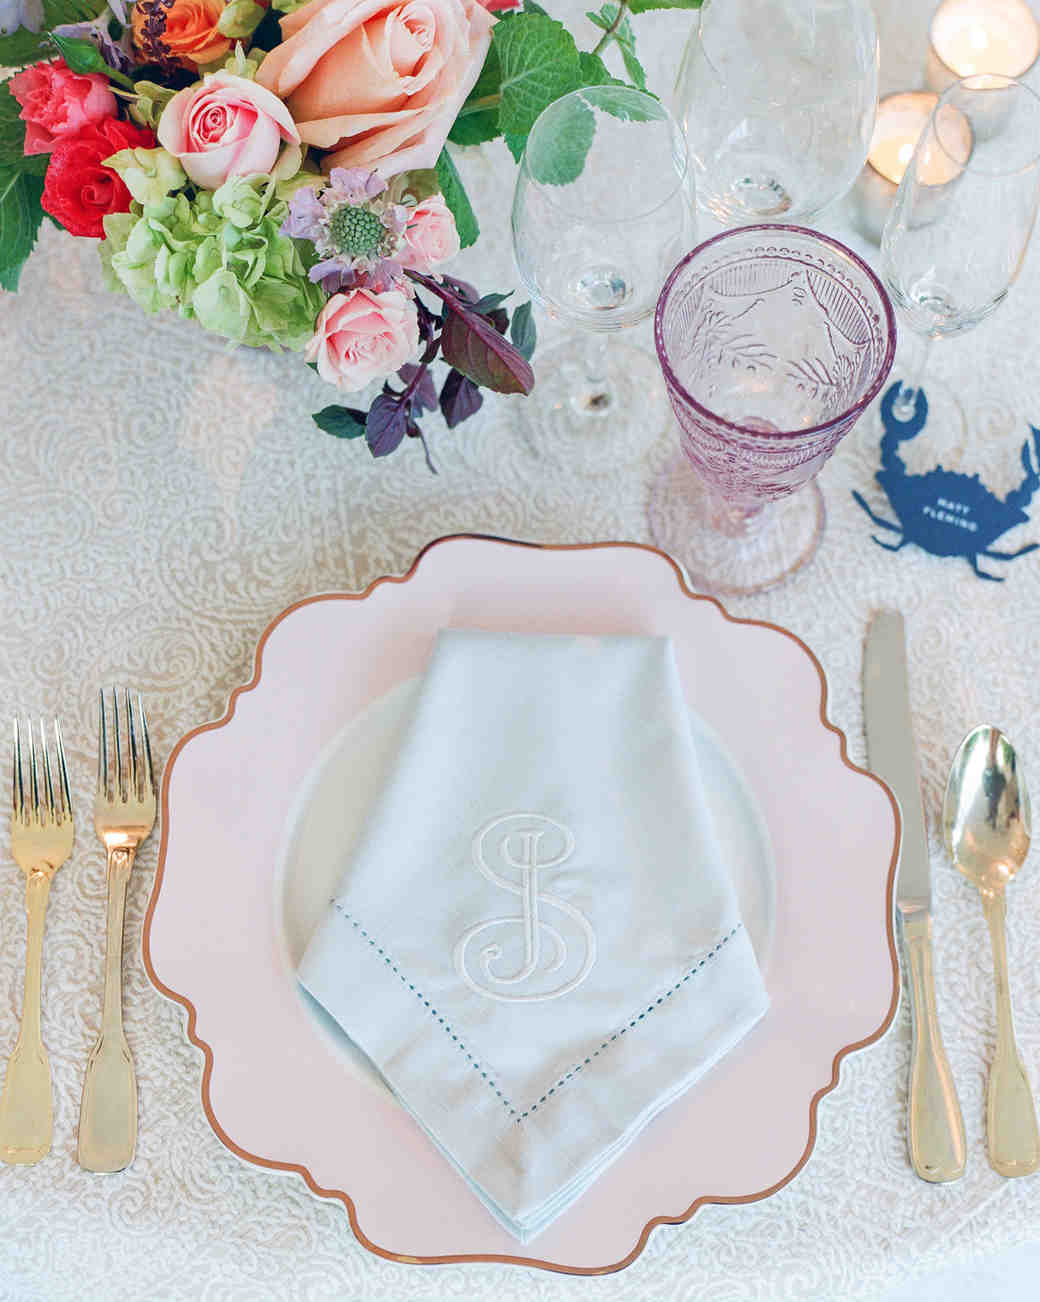 wedding reception napkin folds pentagonal fold on monogramed napkin